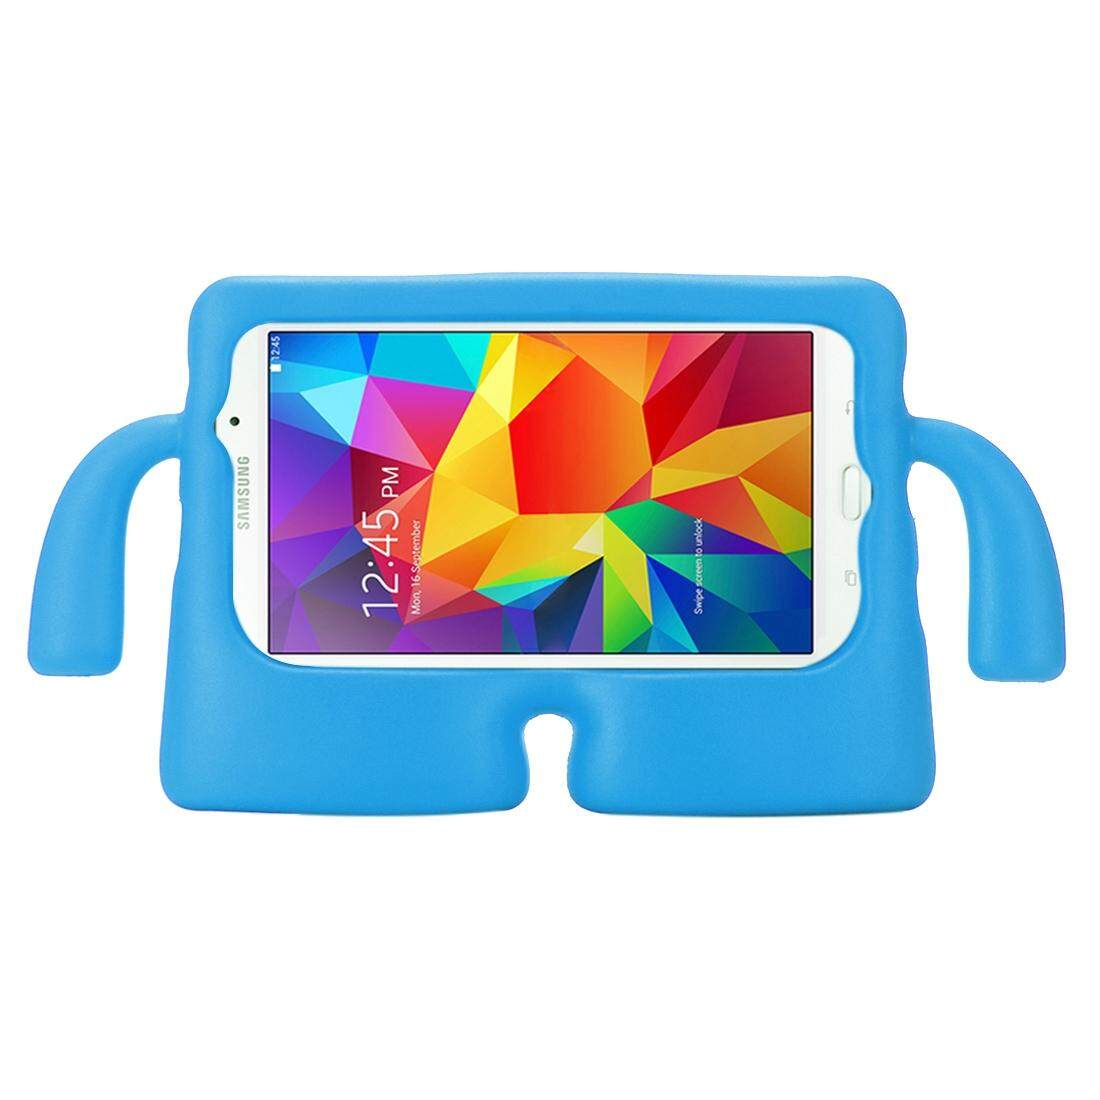 For Samsung Galaxy Tab 4 7.0 / T230 & Tab 3 Kids / Lite / T111 Universal Small Person TV Model EVA Bumper Protective Case(Blue) - intl